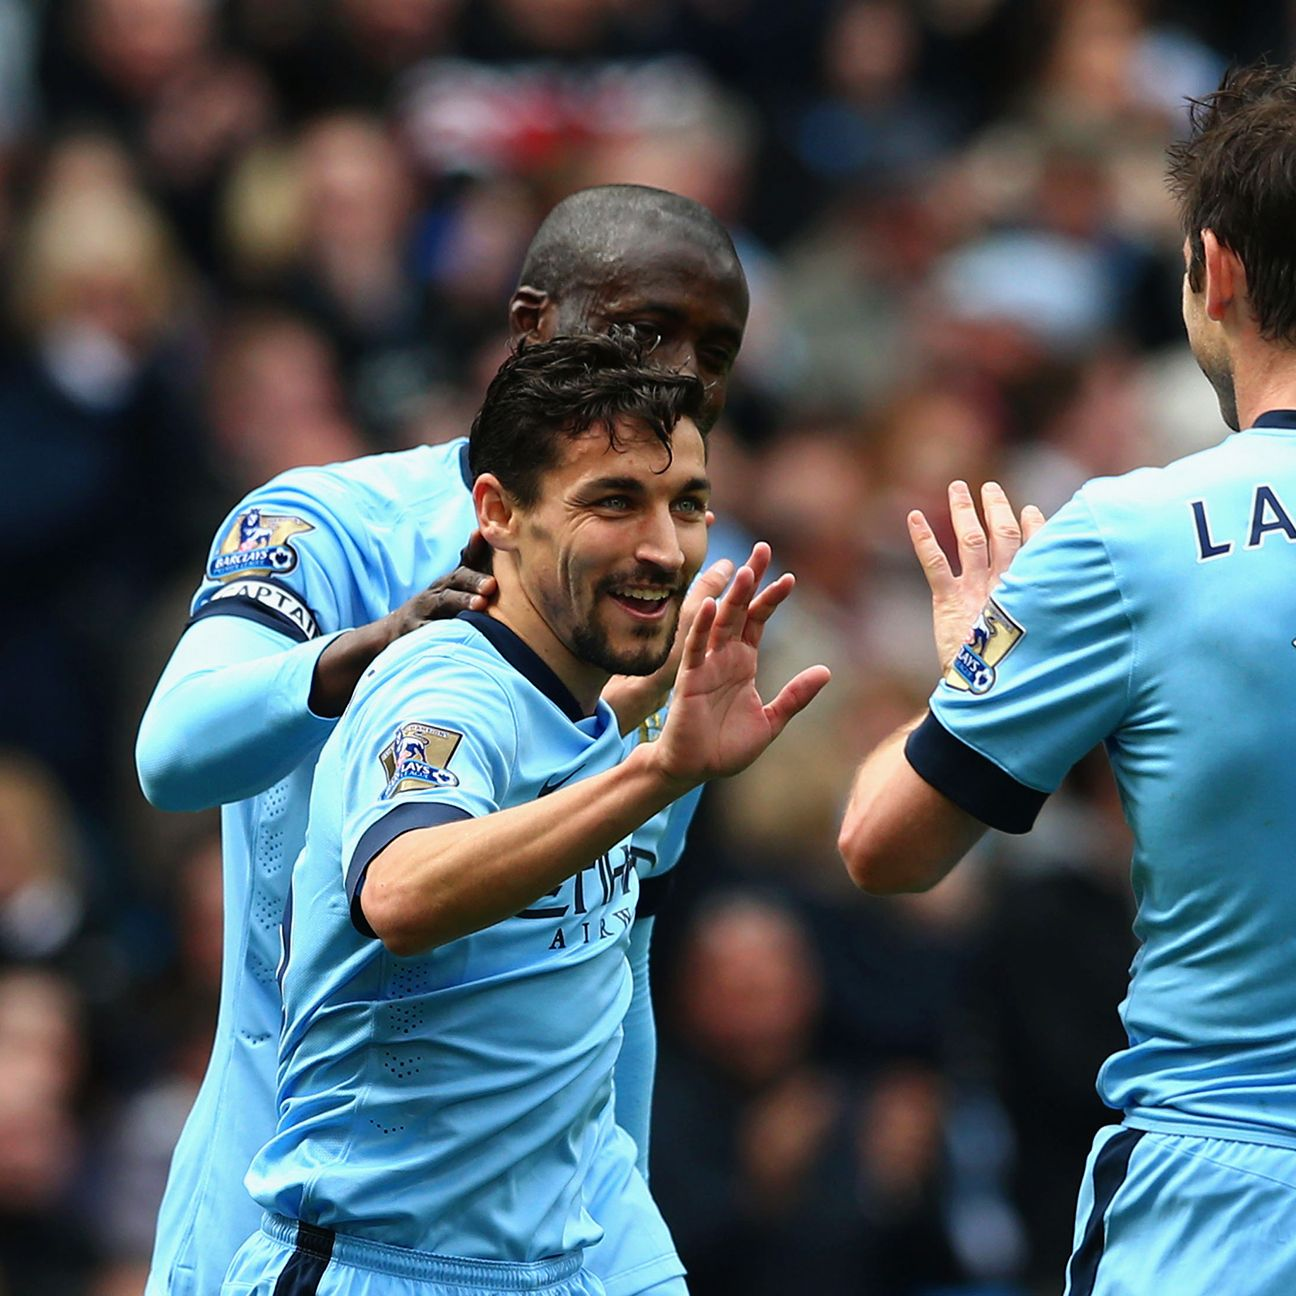 Jesus Navas had a big hand in both Manchester City scores.